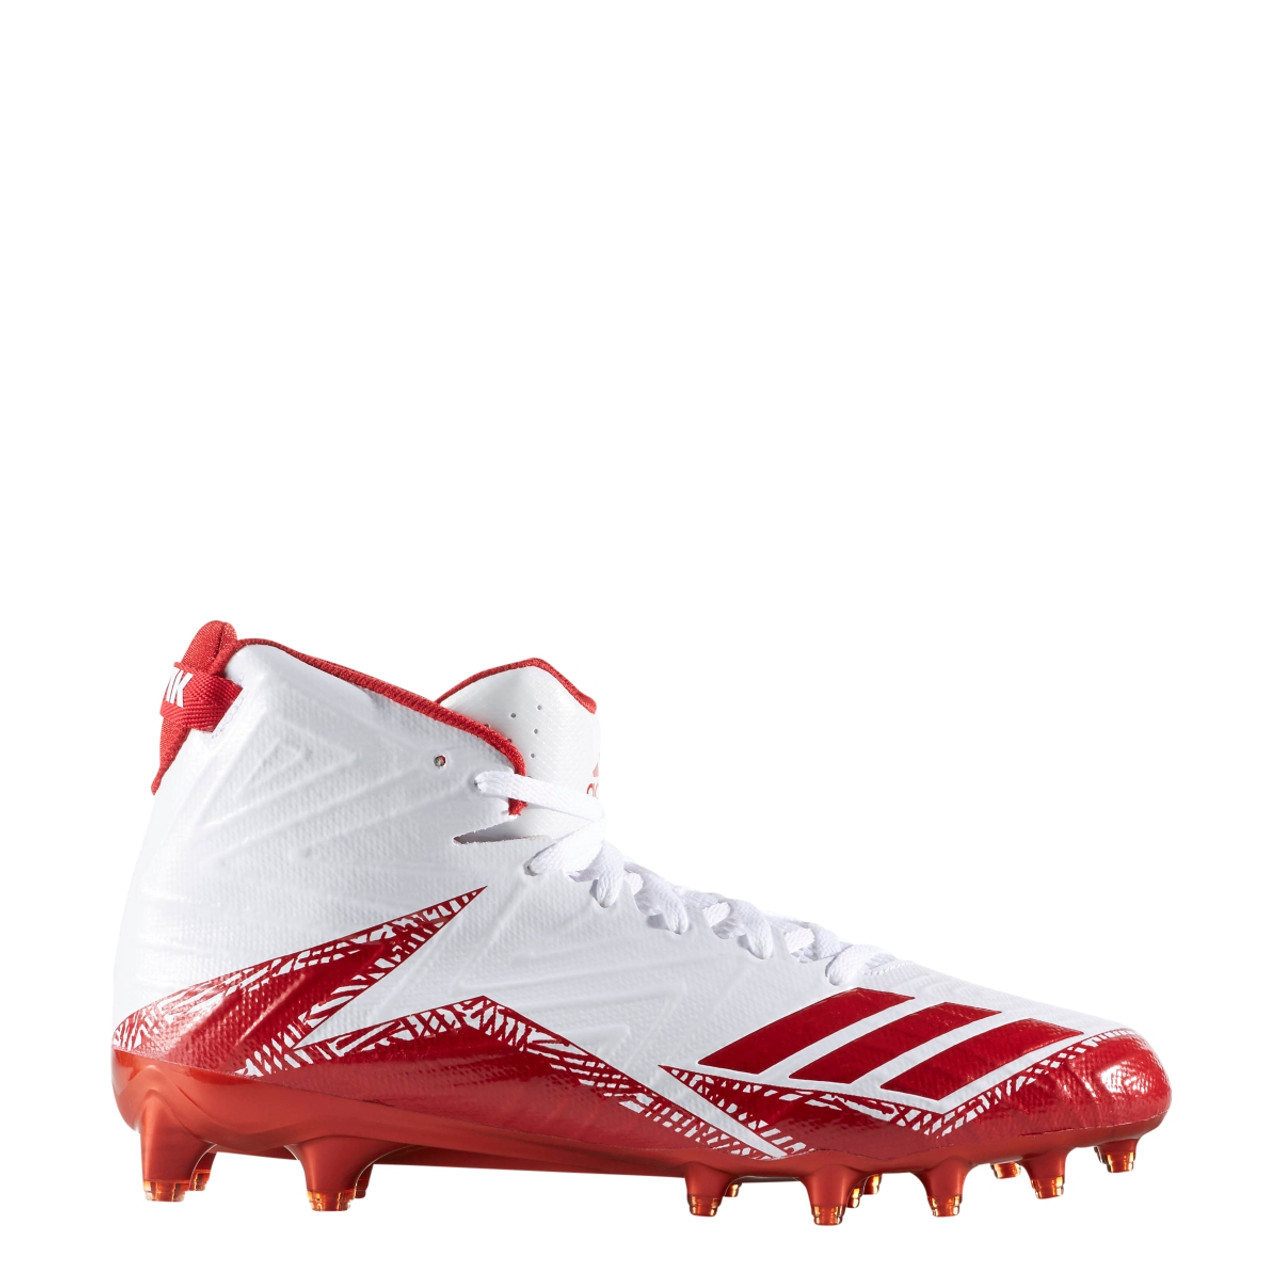 low priced a48f8 72098 Men's Adidas Performance Freak X Carbon Mid Football Cleat